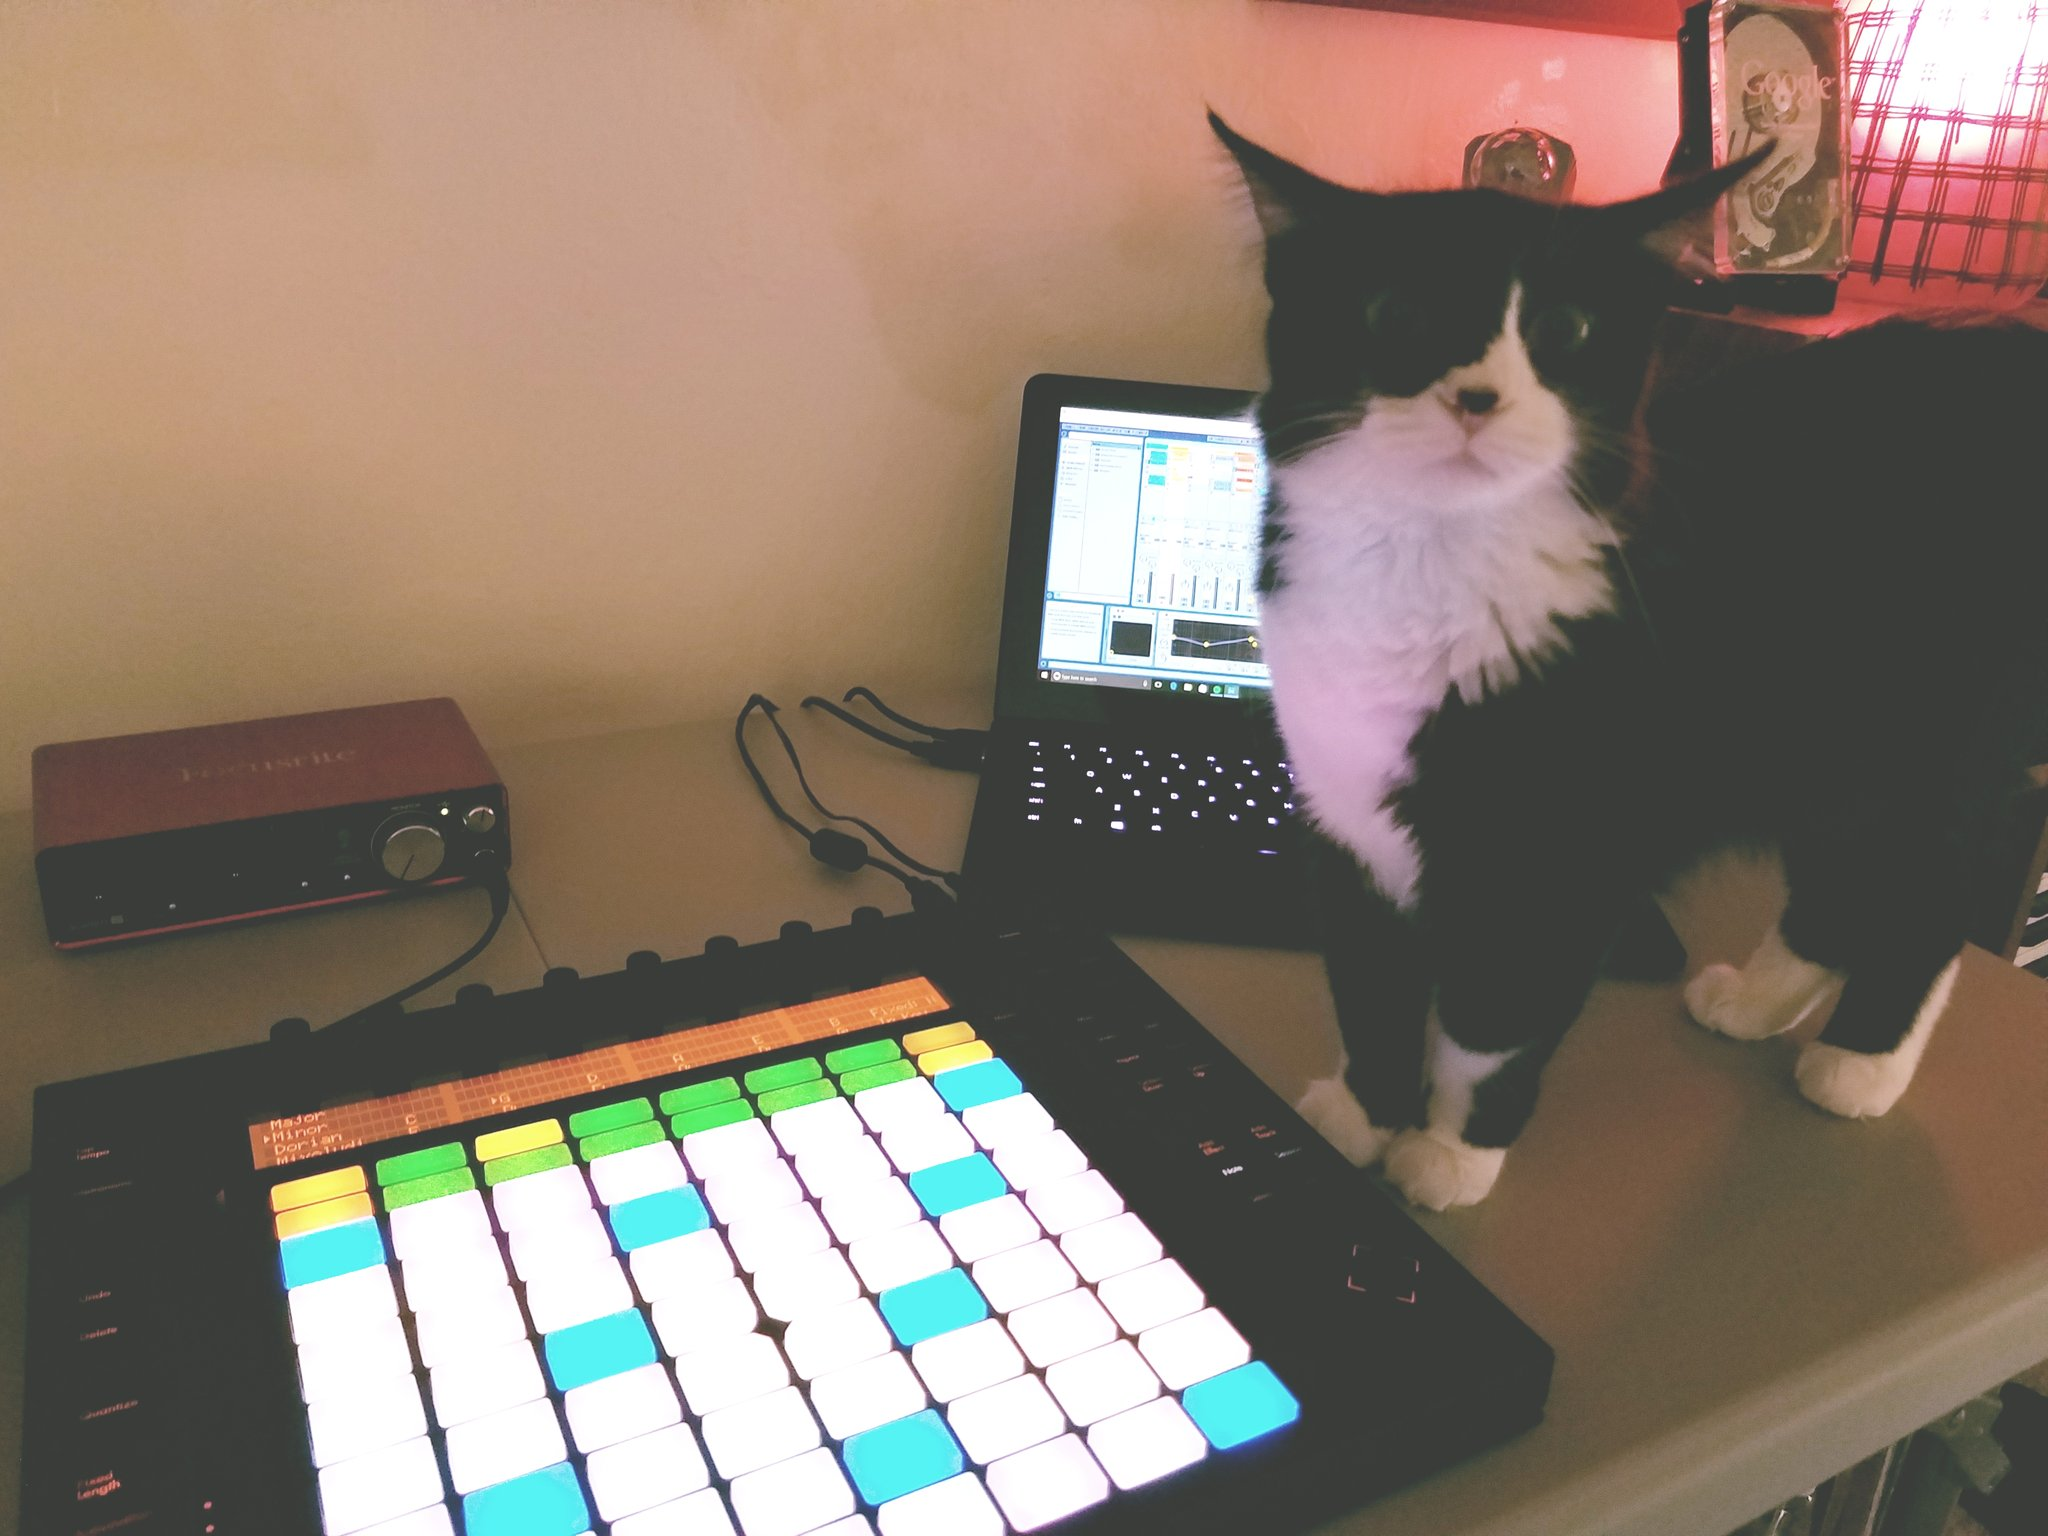 The live setup! - I have a special portable setup for live shows. I use many of the same software instruments listed below in 'the sounds' section below.The Laptop:Razer Blade StealthAudio Interface: Scarlett 2i2Workstation software: Ableton LiveControl surface: Ableton Push